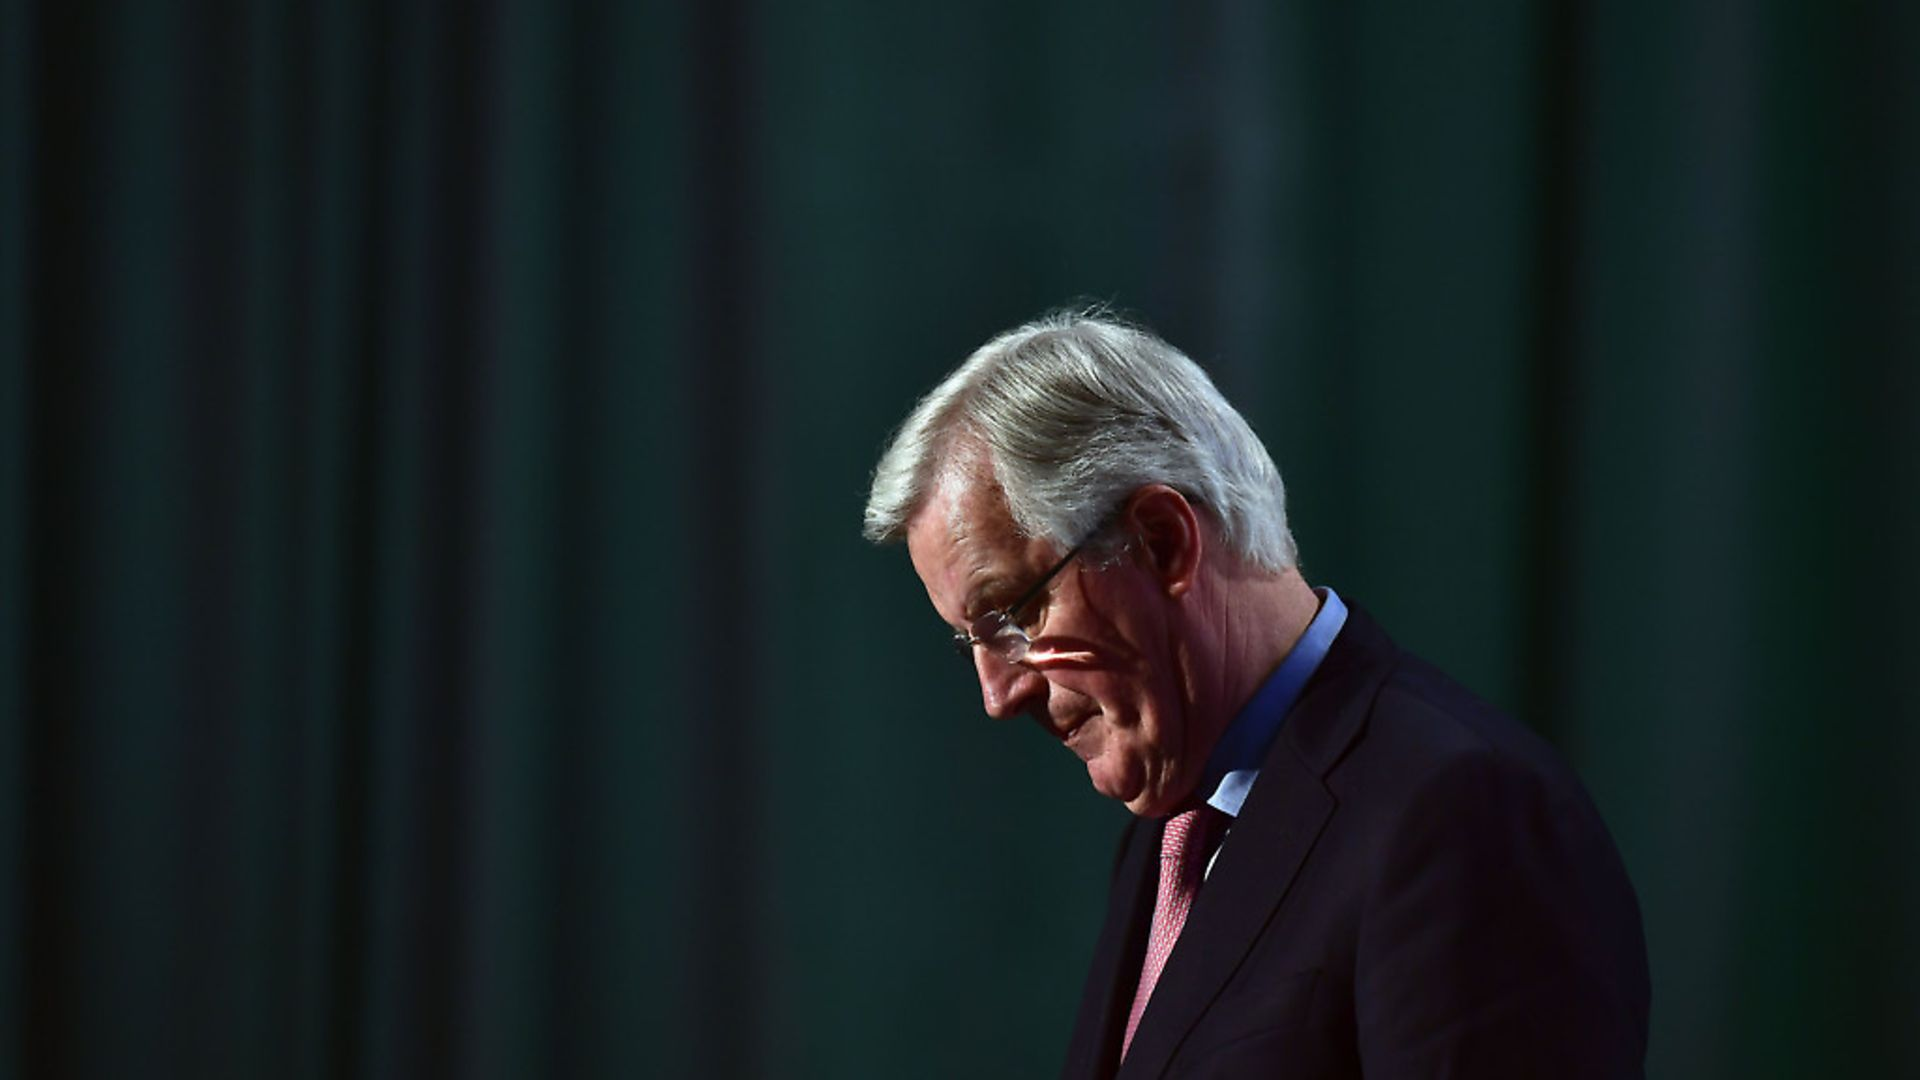 EU Chief Negotiator on Brexit Michel Barnier (Photo by Charles McQuillan/Getty Images) - Credit: Getty Images